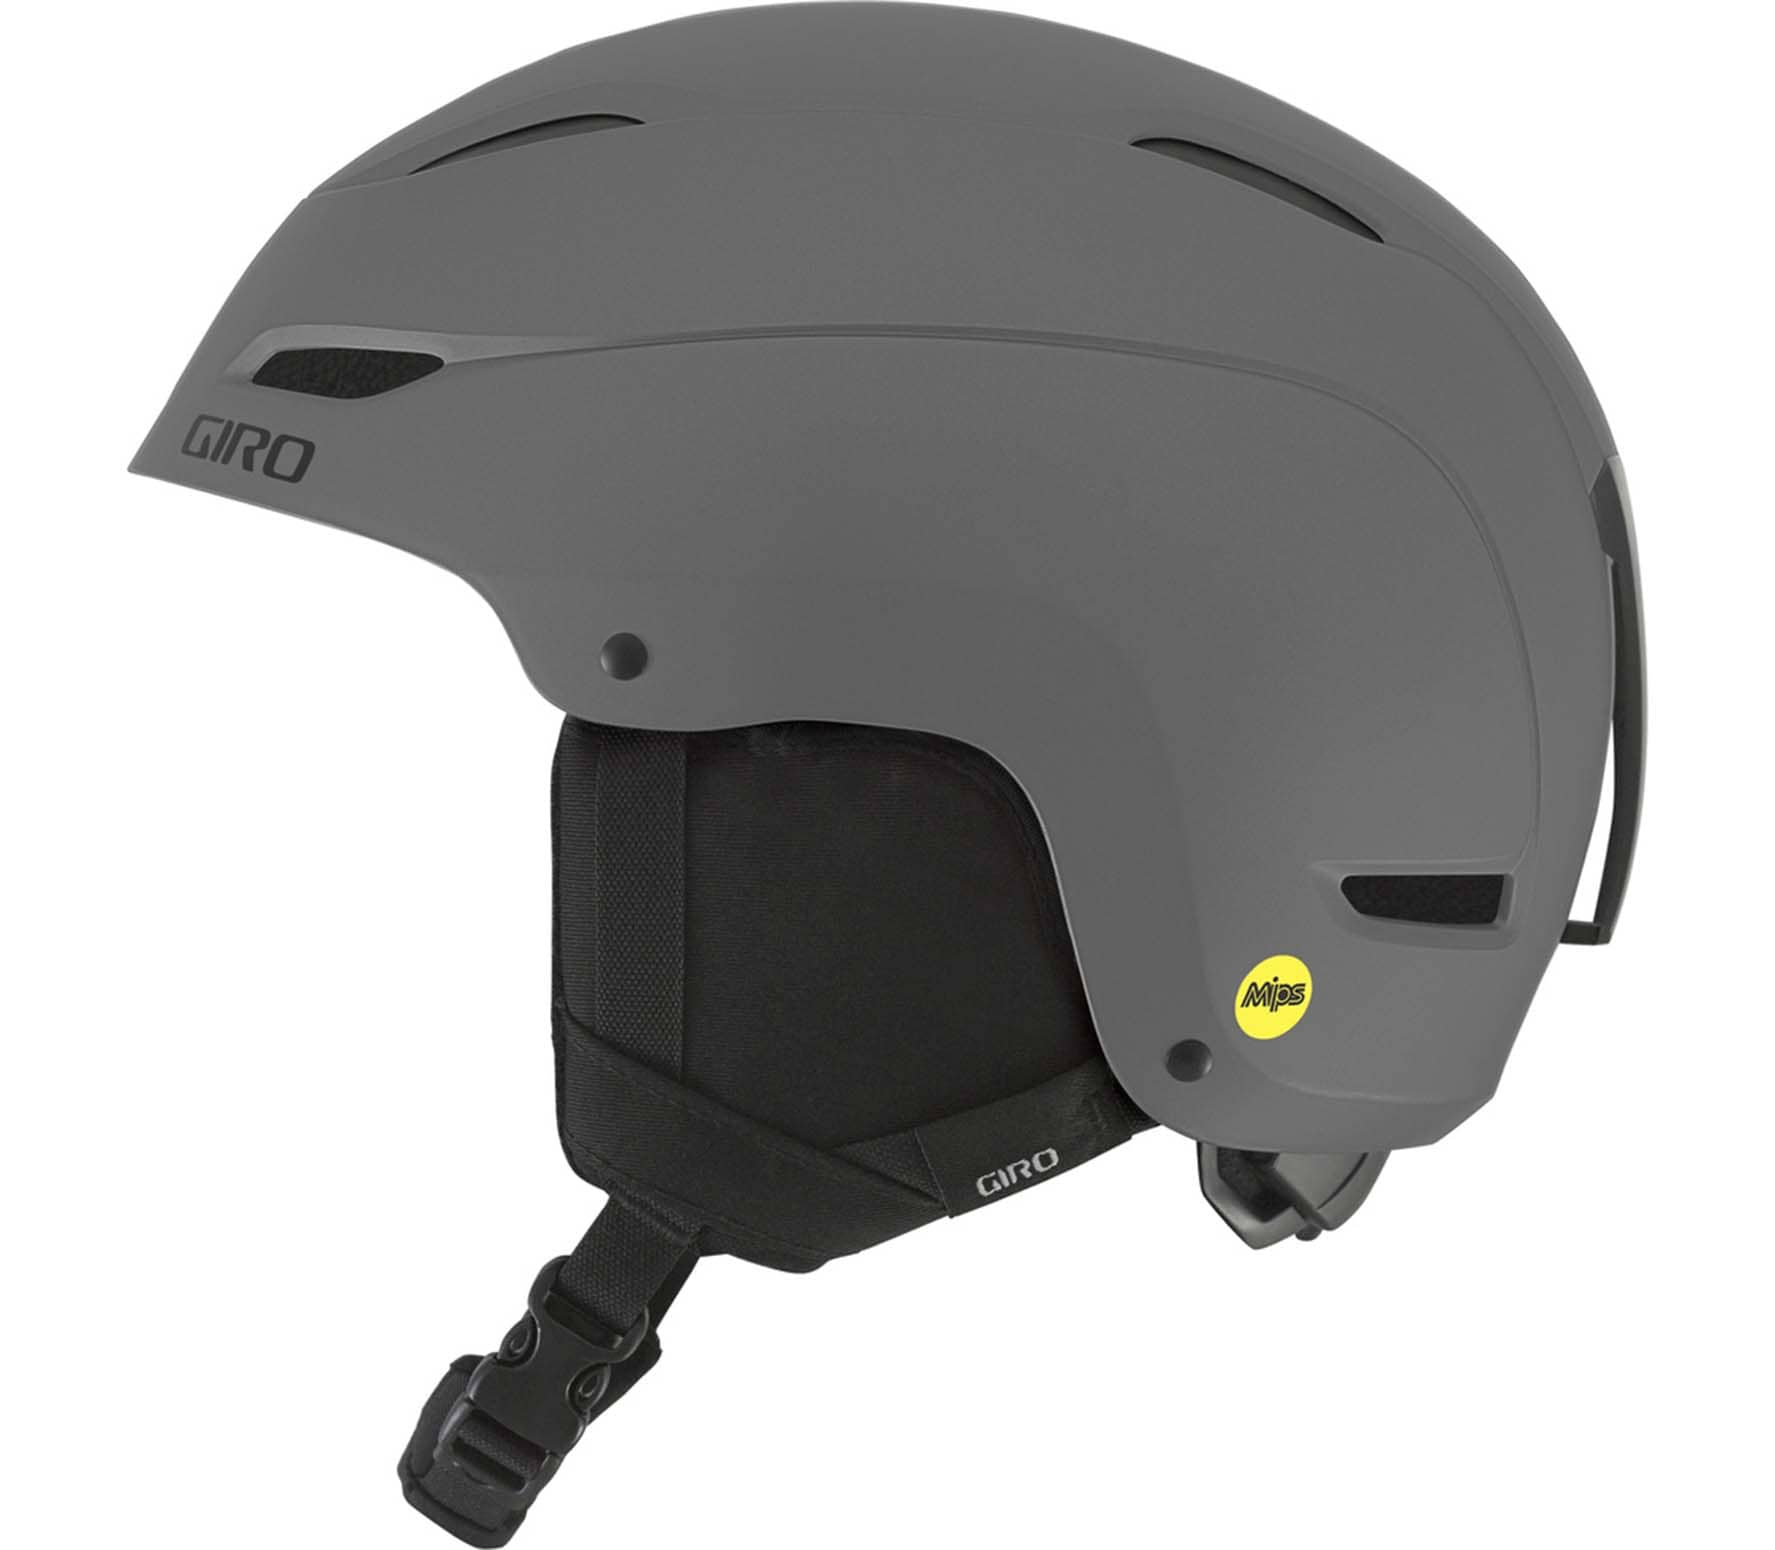 Ratio Mips Skihelm Unisex